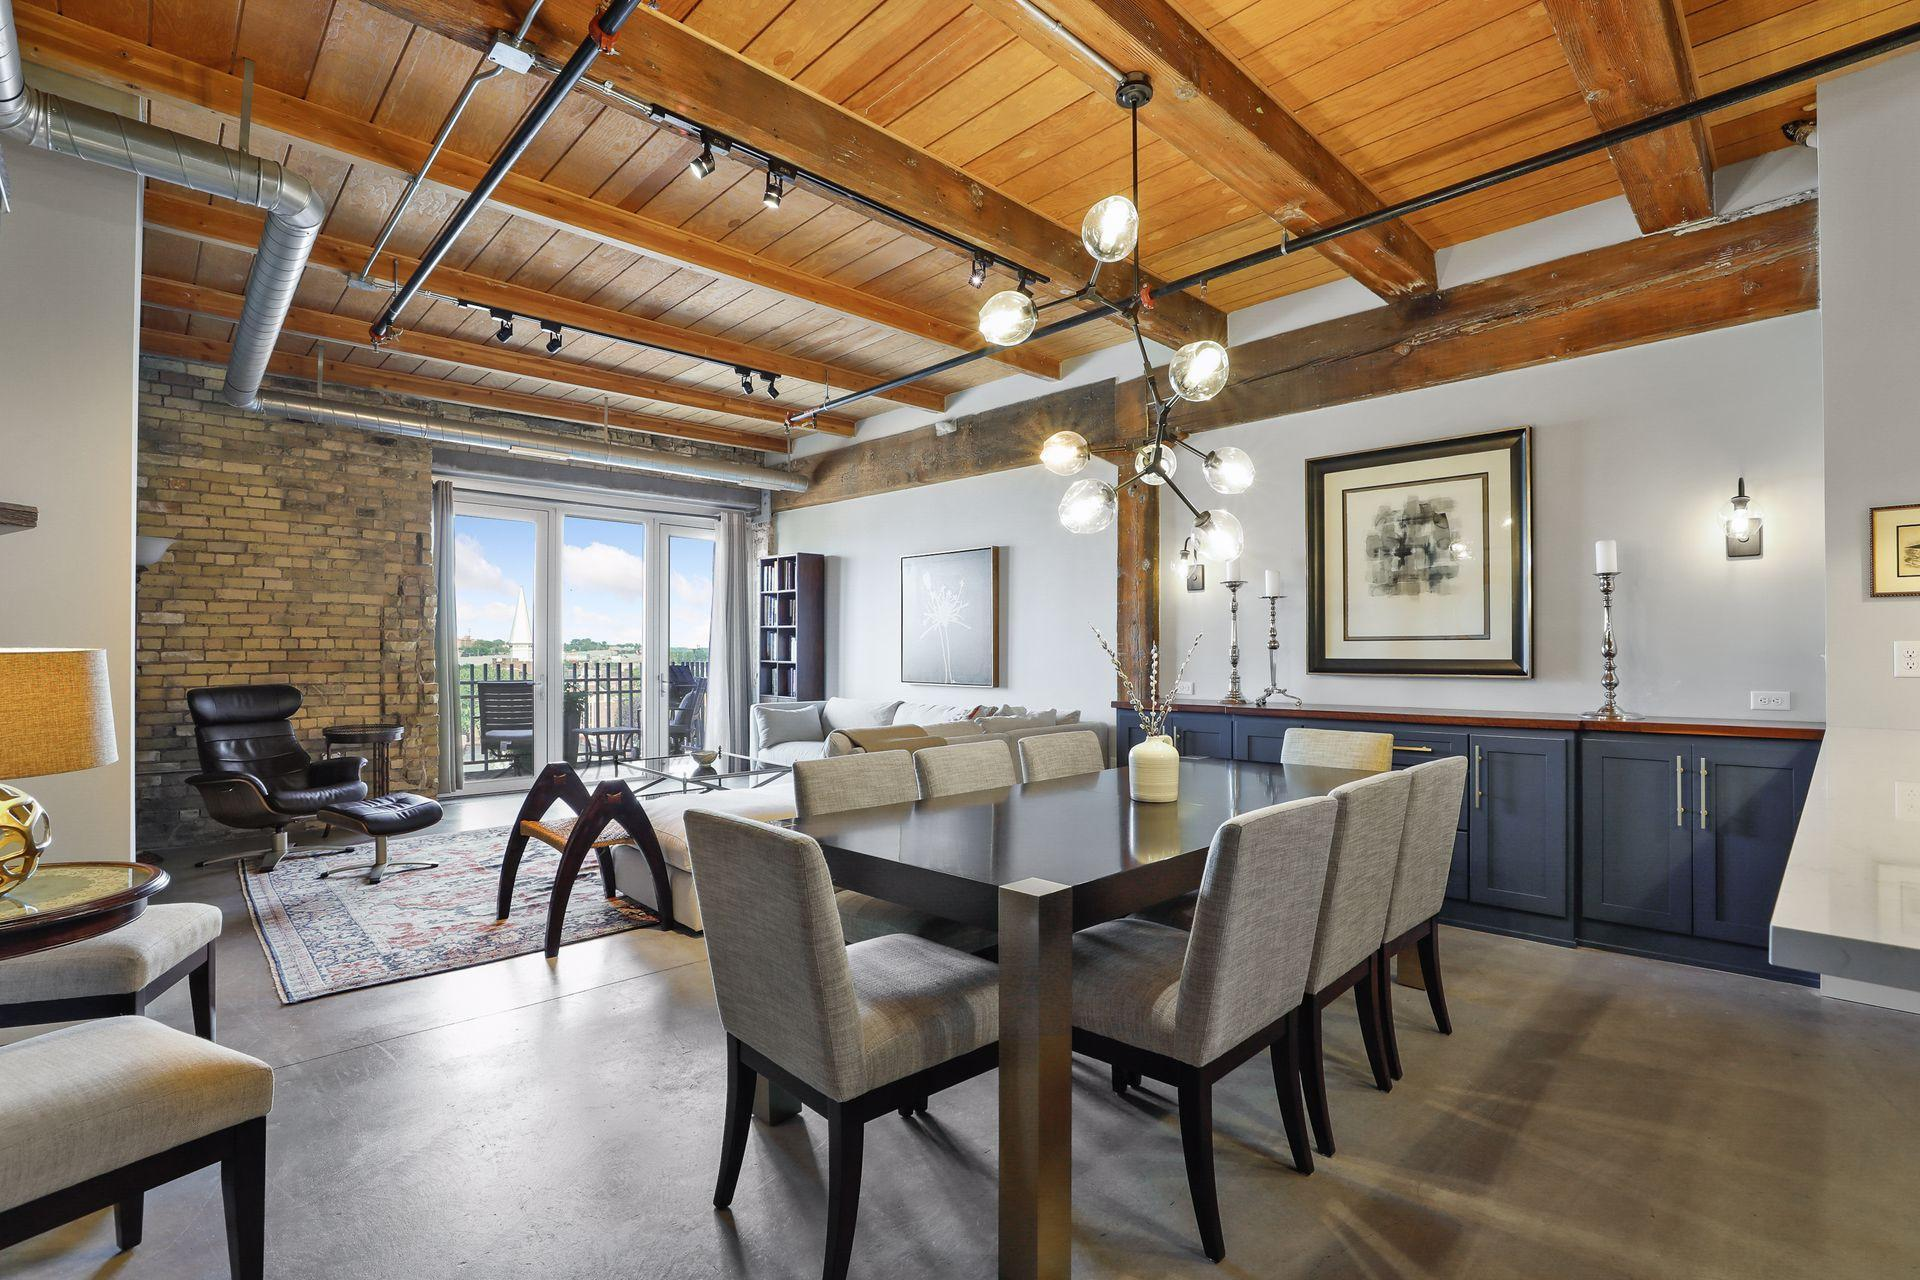 WOW !! Fabulous open floor plan with tons of architectural interest !